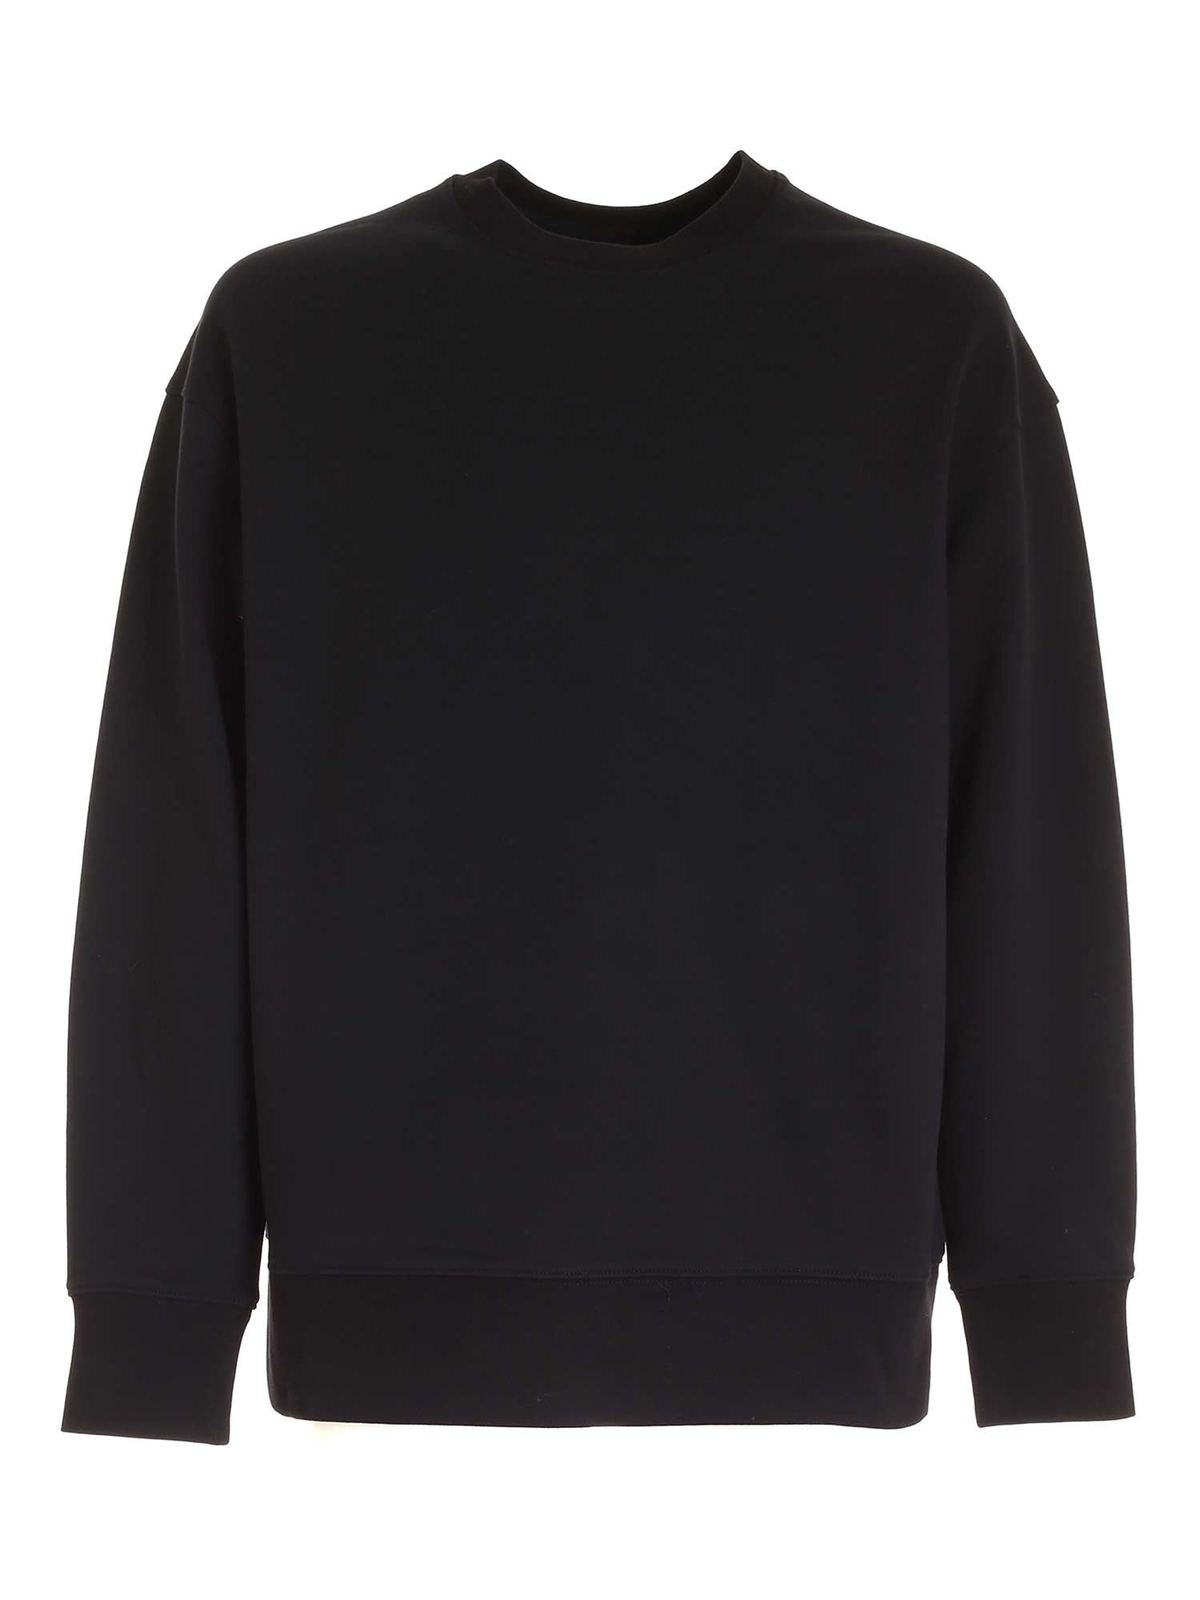 Y-3 LOGO PATCH SWEATSHIRT IN BLACK